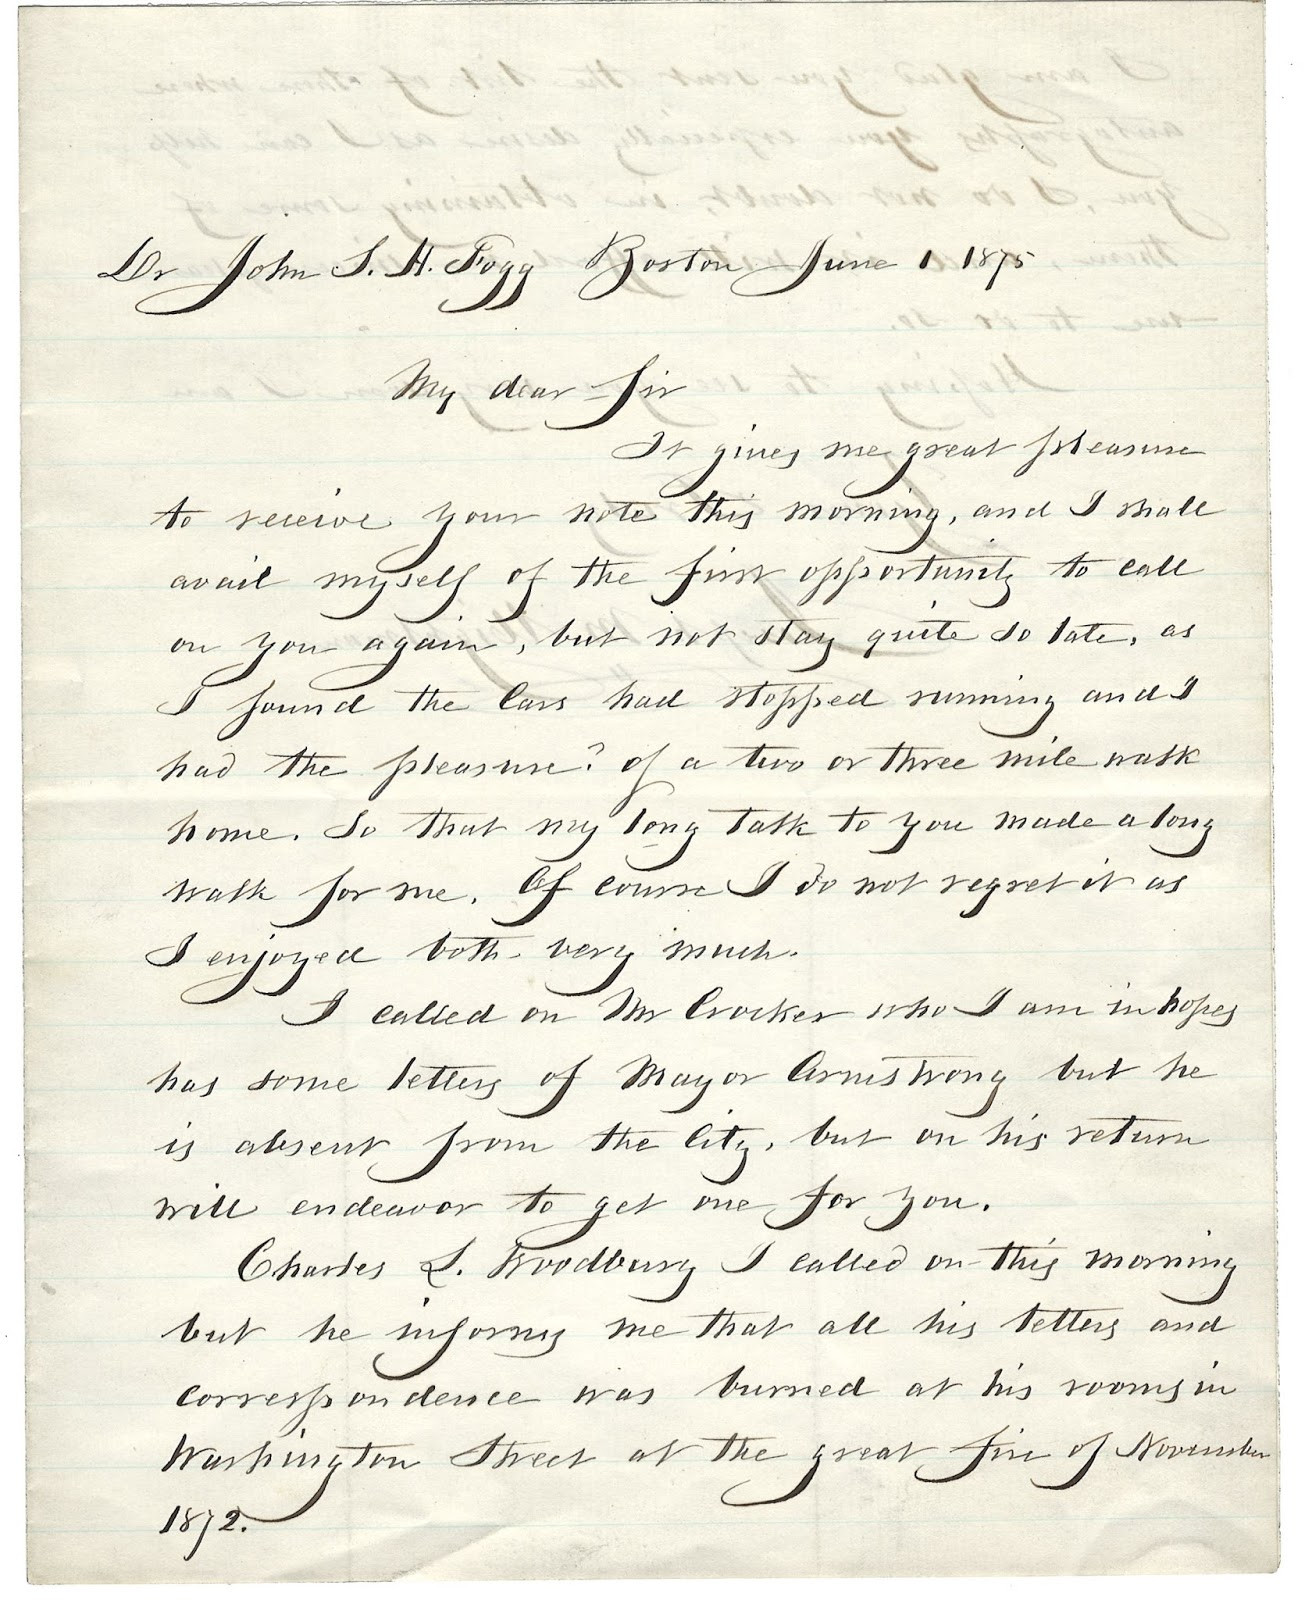 Letter from Wightman to Fogg (MS0119/DC921.1875)